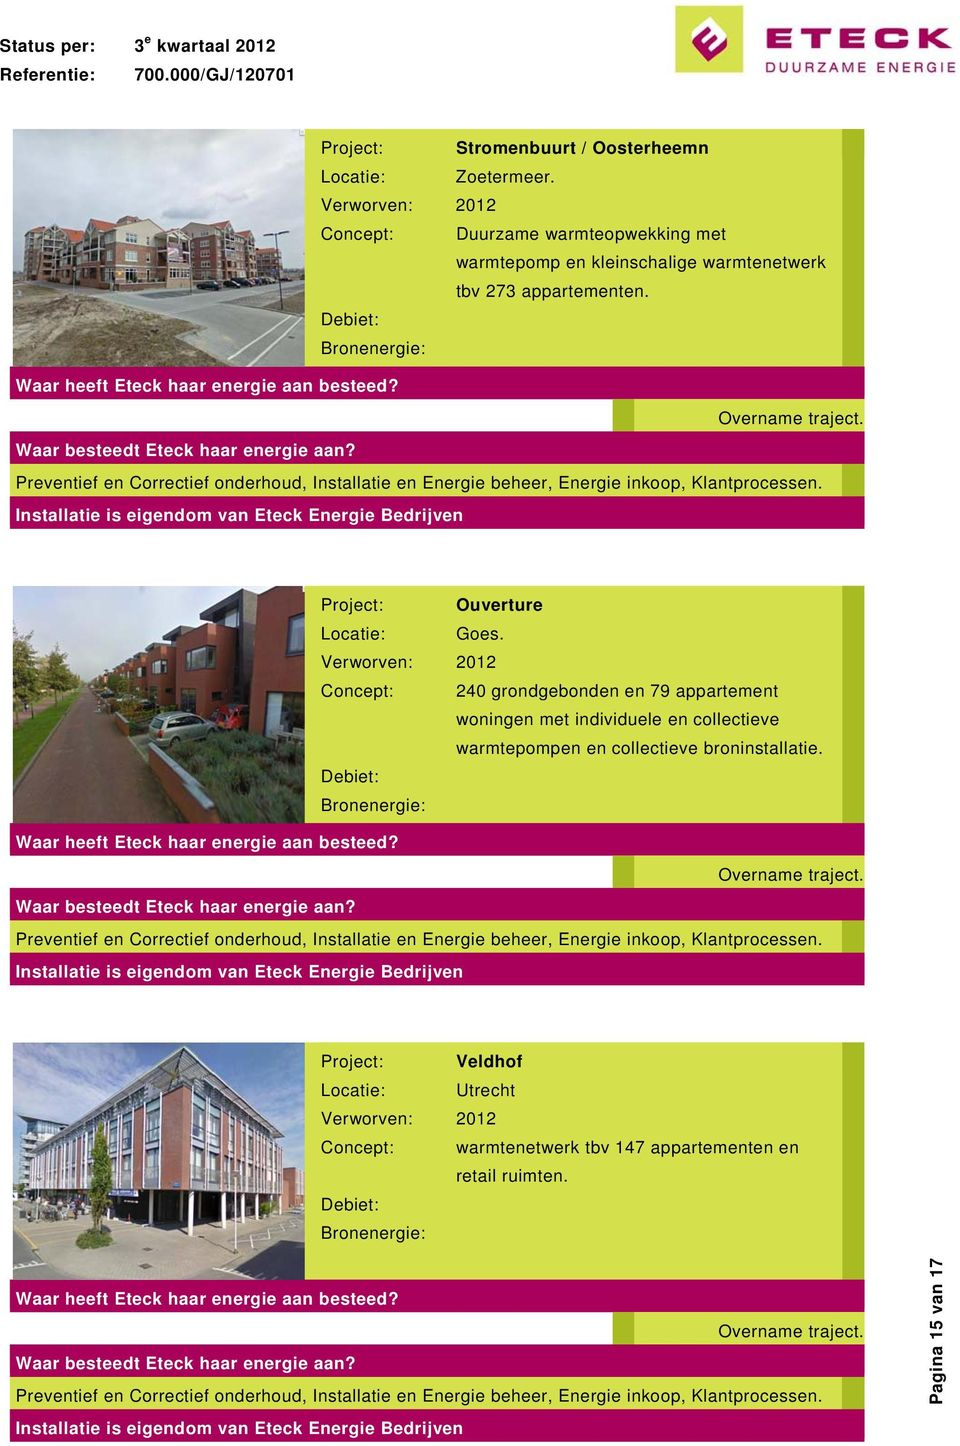 Project: Ouverture Locatie: Goes.